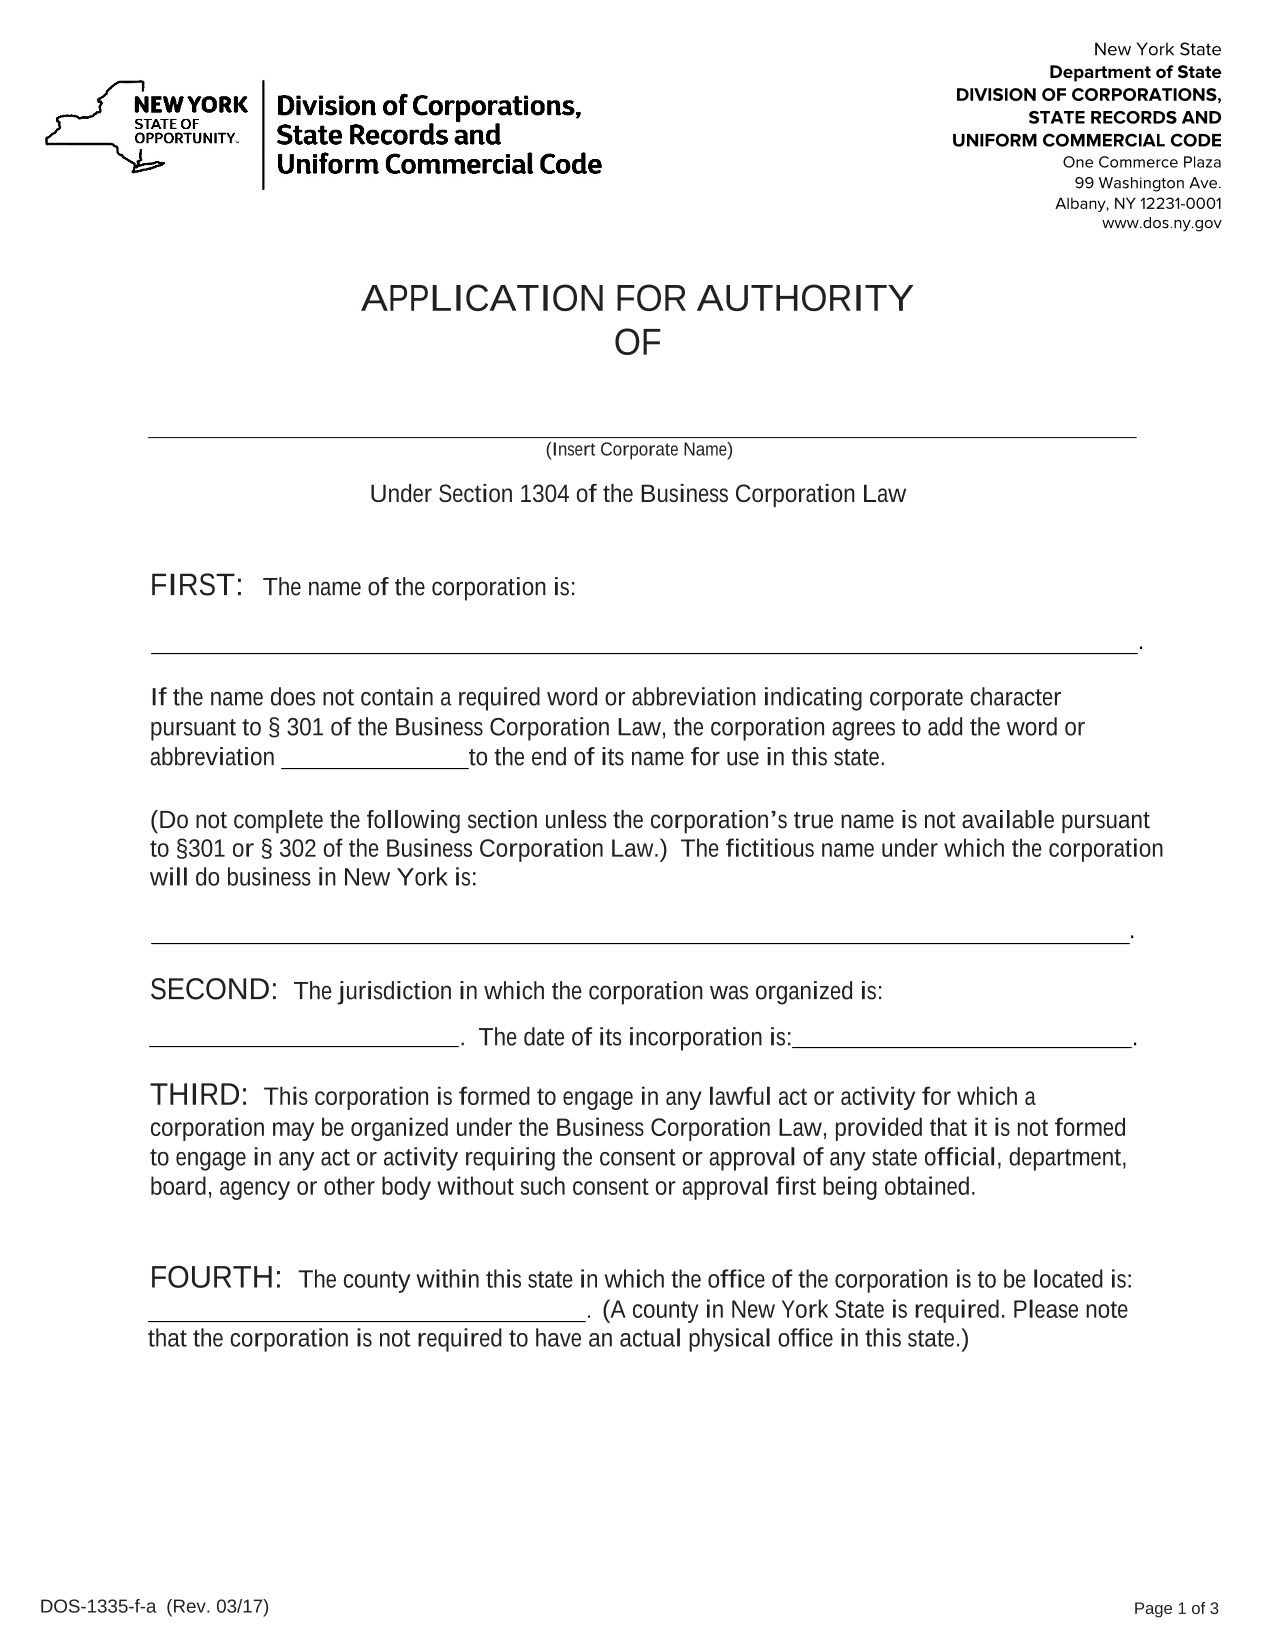 new-york-foreign-corporation-application-for-authority